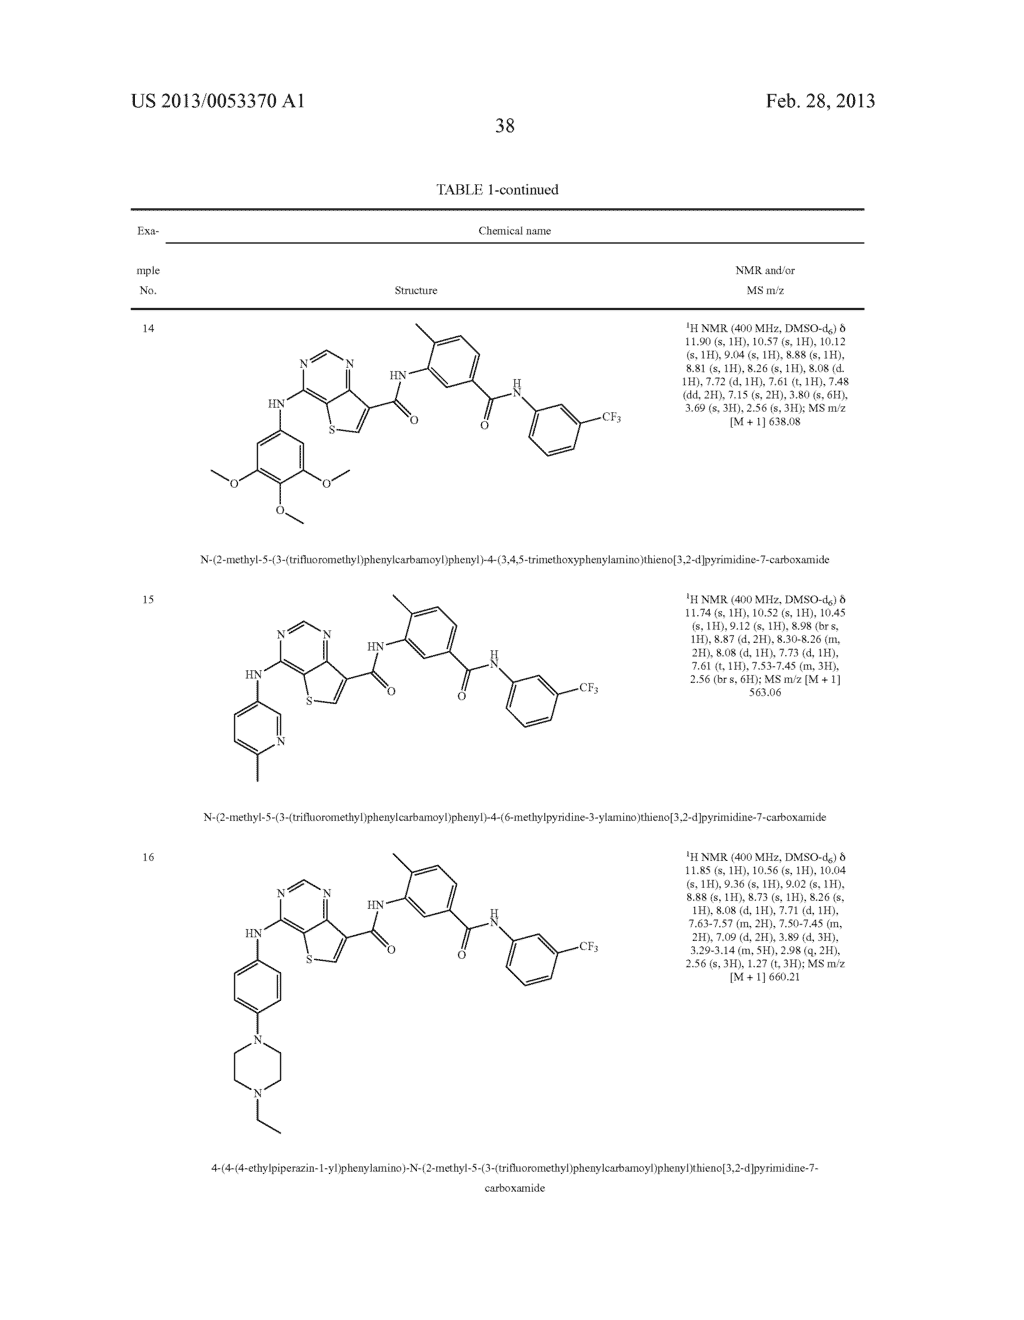 THIENO[3,2-d]PYRIMIDINE DERIVATIVES HAVING INHIBITORY ACTIVITY ON PROTEIN     KINASES - diagram, schematic, and image 39